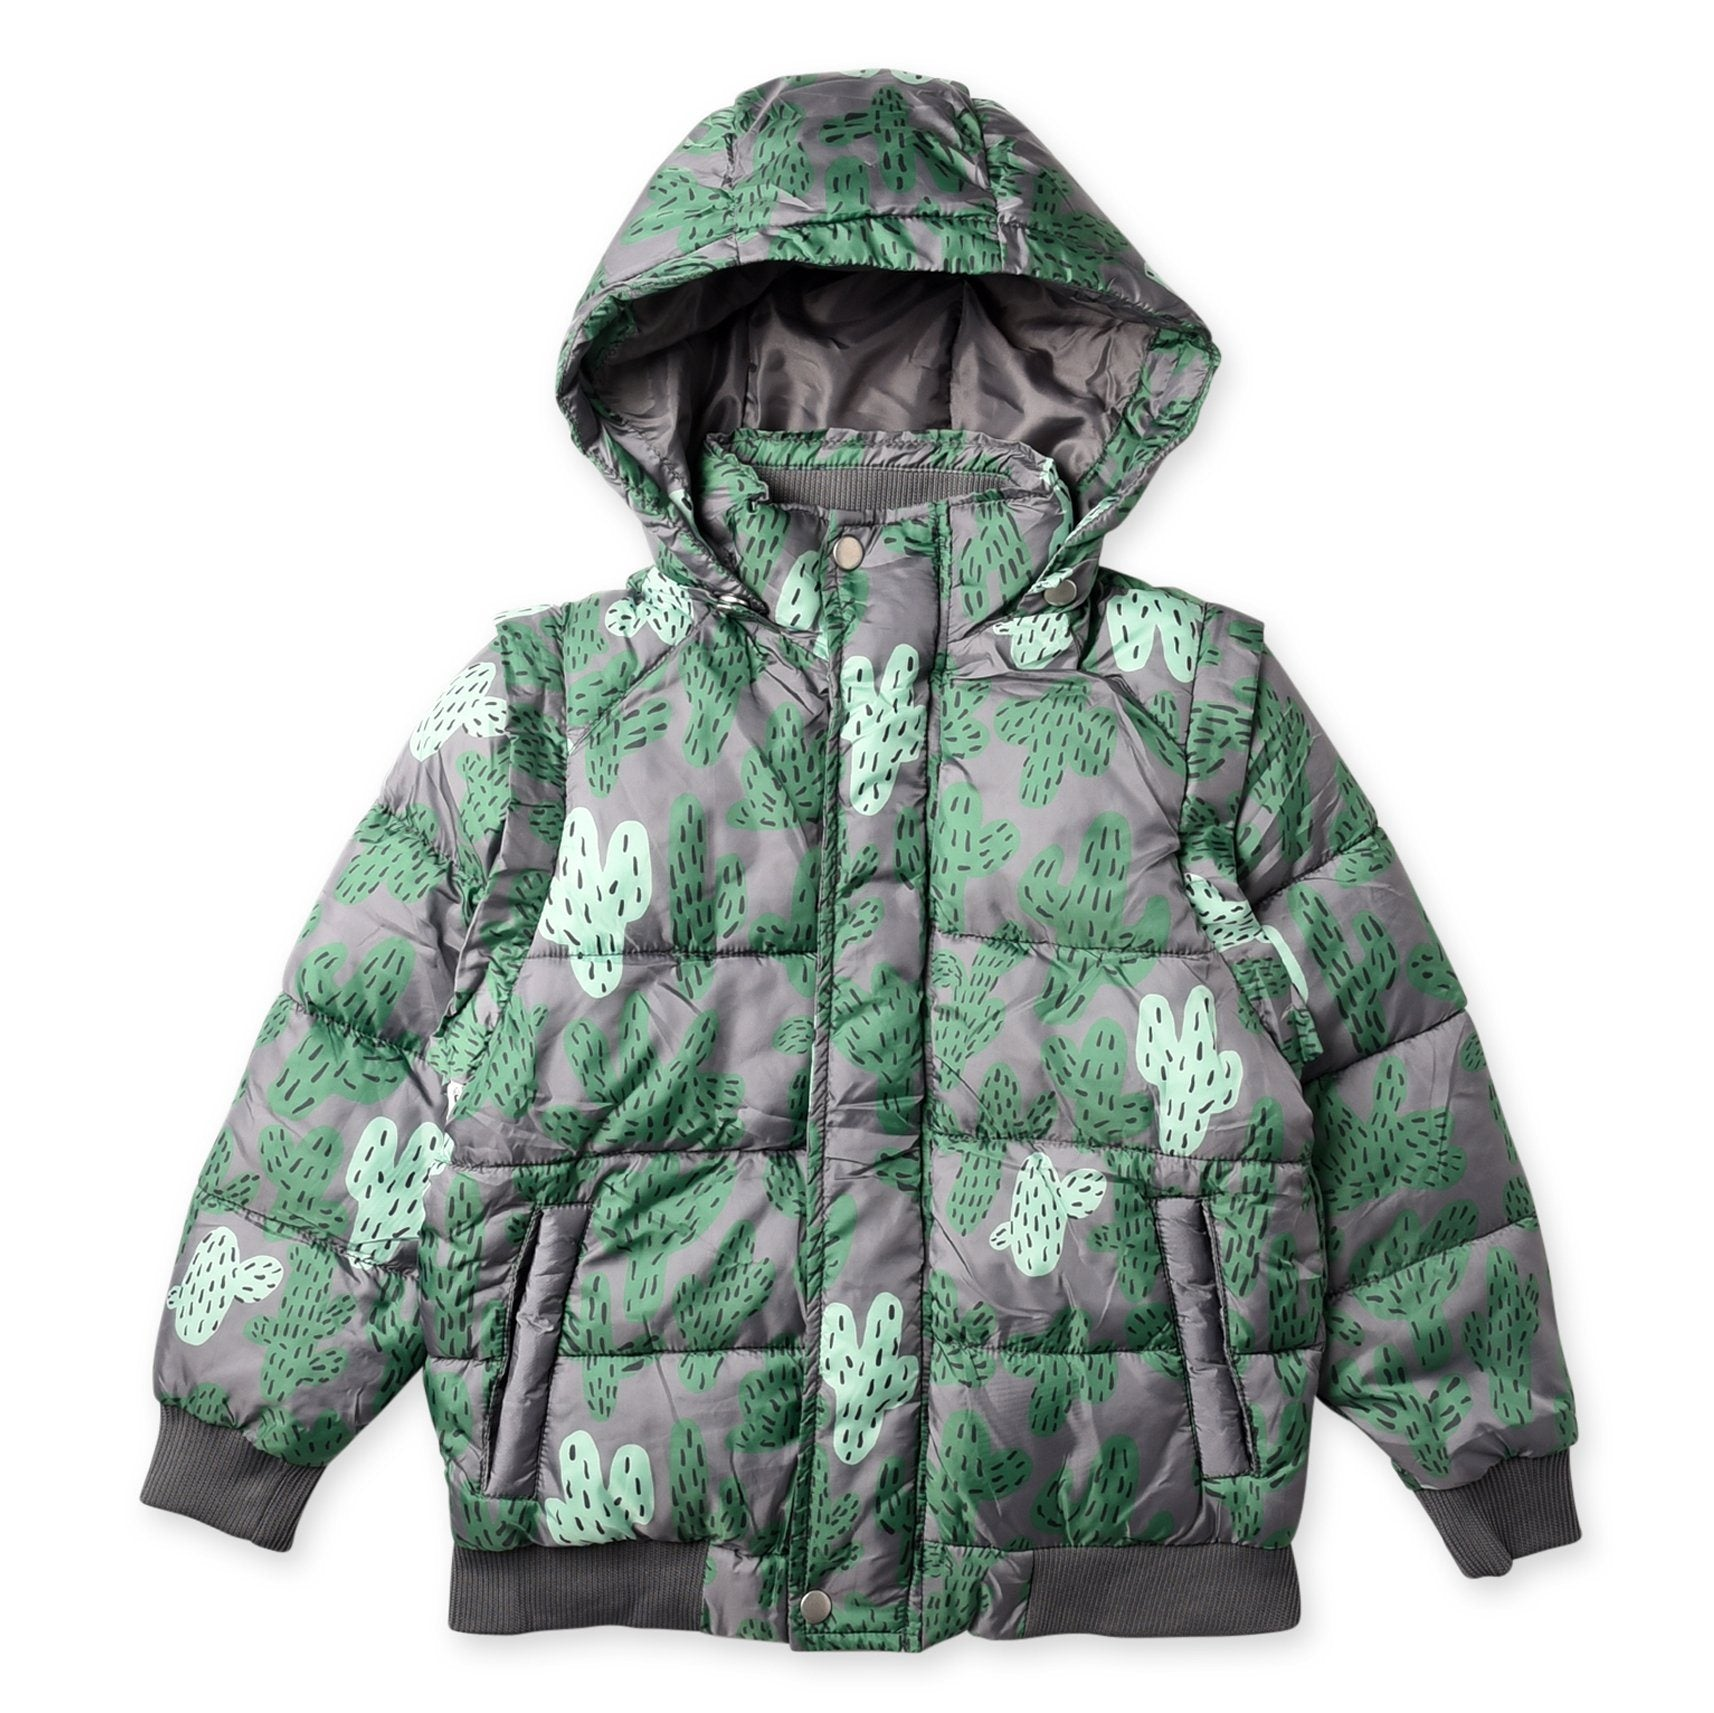 Cactus Ultimate Puffa Jacket